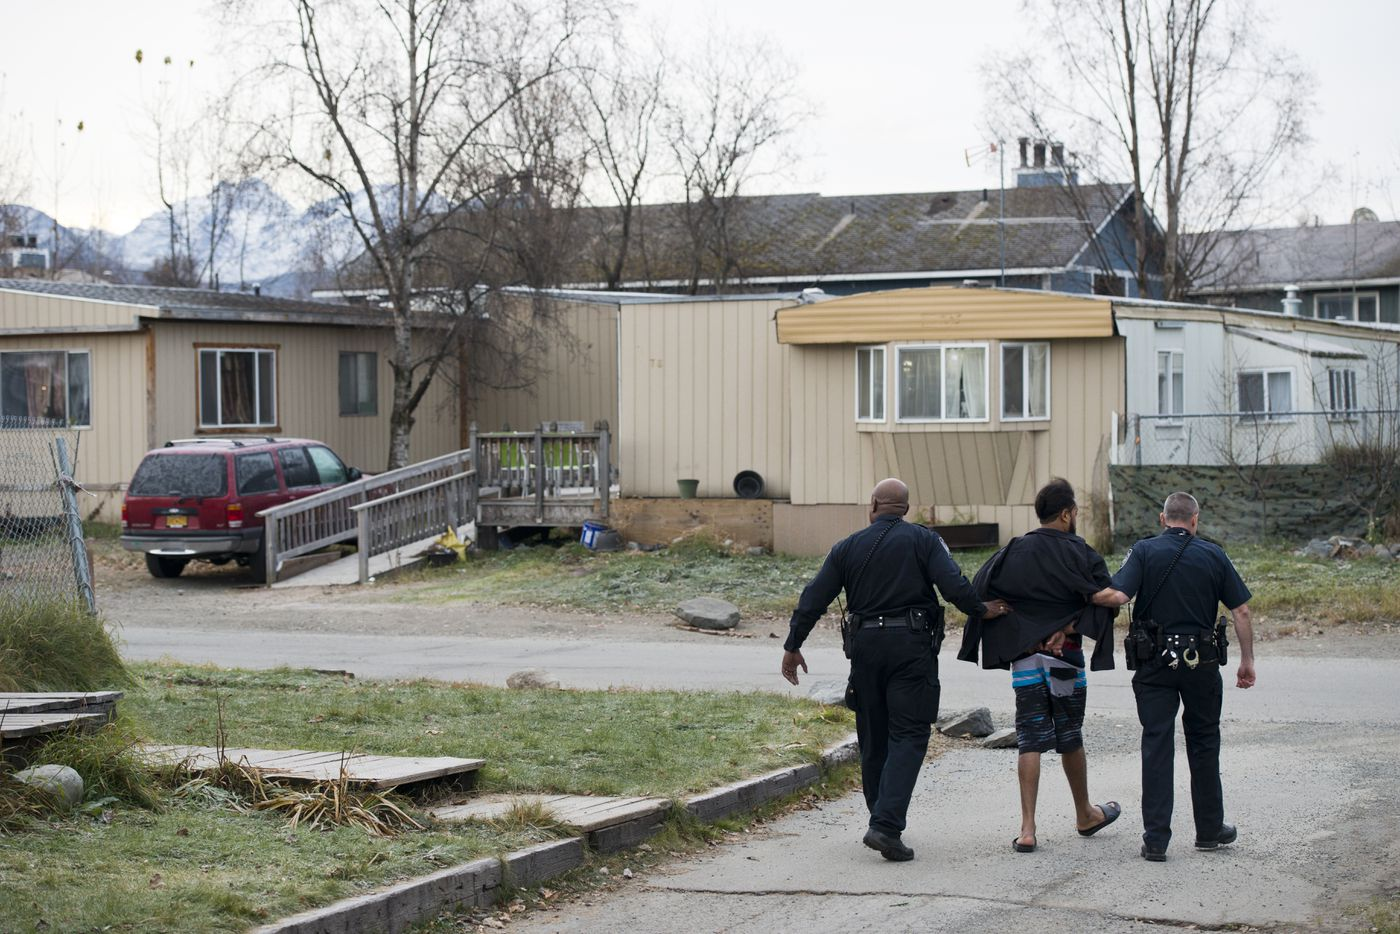 Anchorage Police warrants officers Troy Leonard, visible, and Aaron Roberts arrest Jose Contreras Evangelista at an East Anchorage home. Police say Evangelista fired a gun at a vehicle several times, resulting in two felony assault charges and a weapon misconduct charge. (Marc Lester / Alaska Dispatch News)